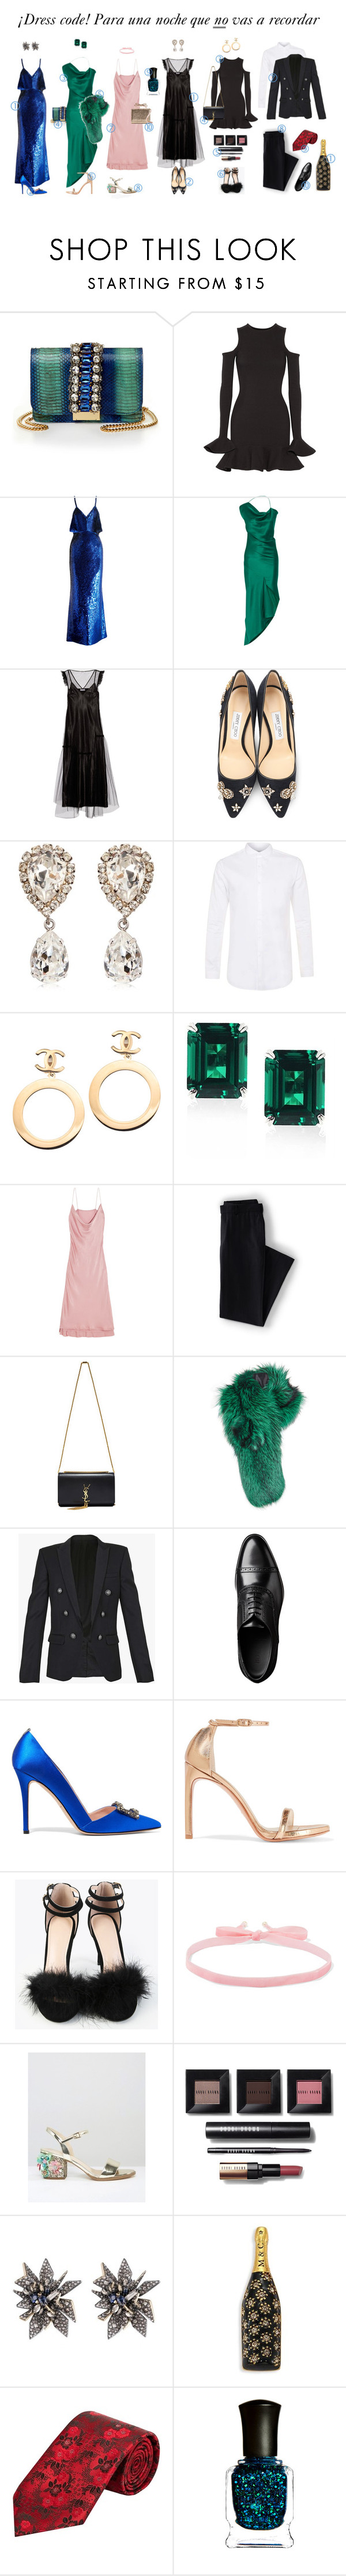 """""""Sin título #585"""" by katarias ❤ liked on Polyvore featuring GEDEBE, Michael Lo Sordo, Ashish, Cushnie Et Ochs, Opening Ceremony, Jimmy Choo, Dolce&Gabbana, Topman, Chanel and CARAT* London"""